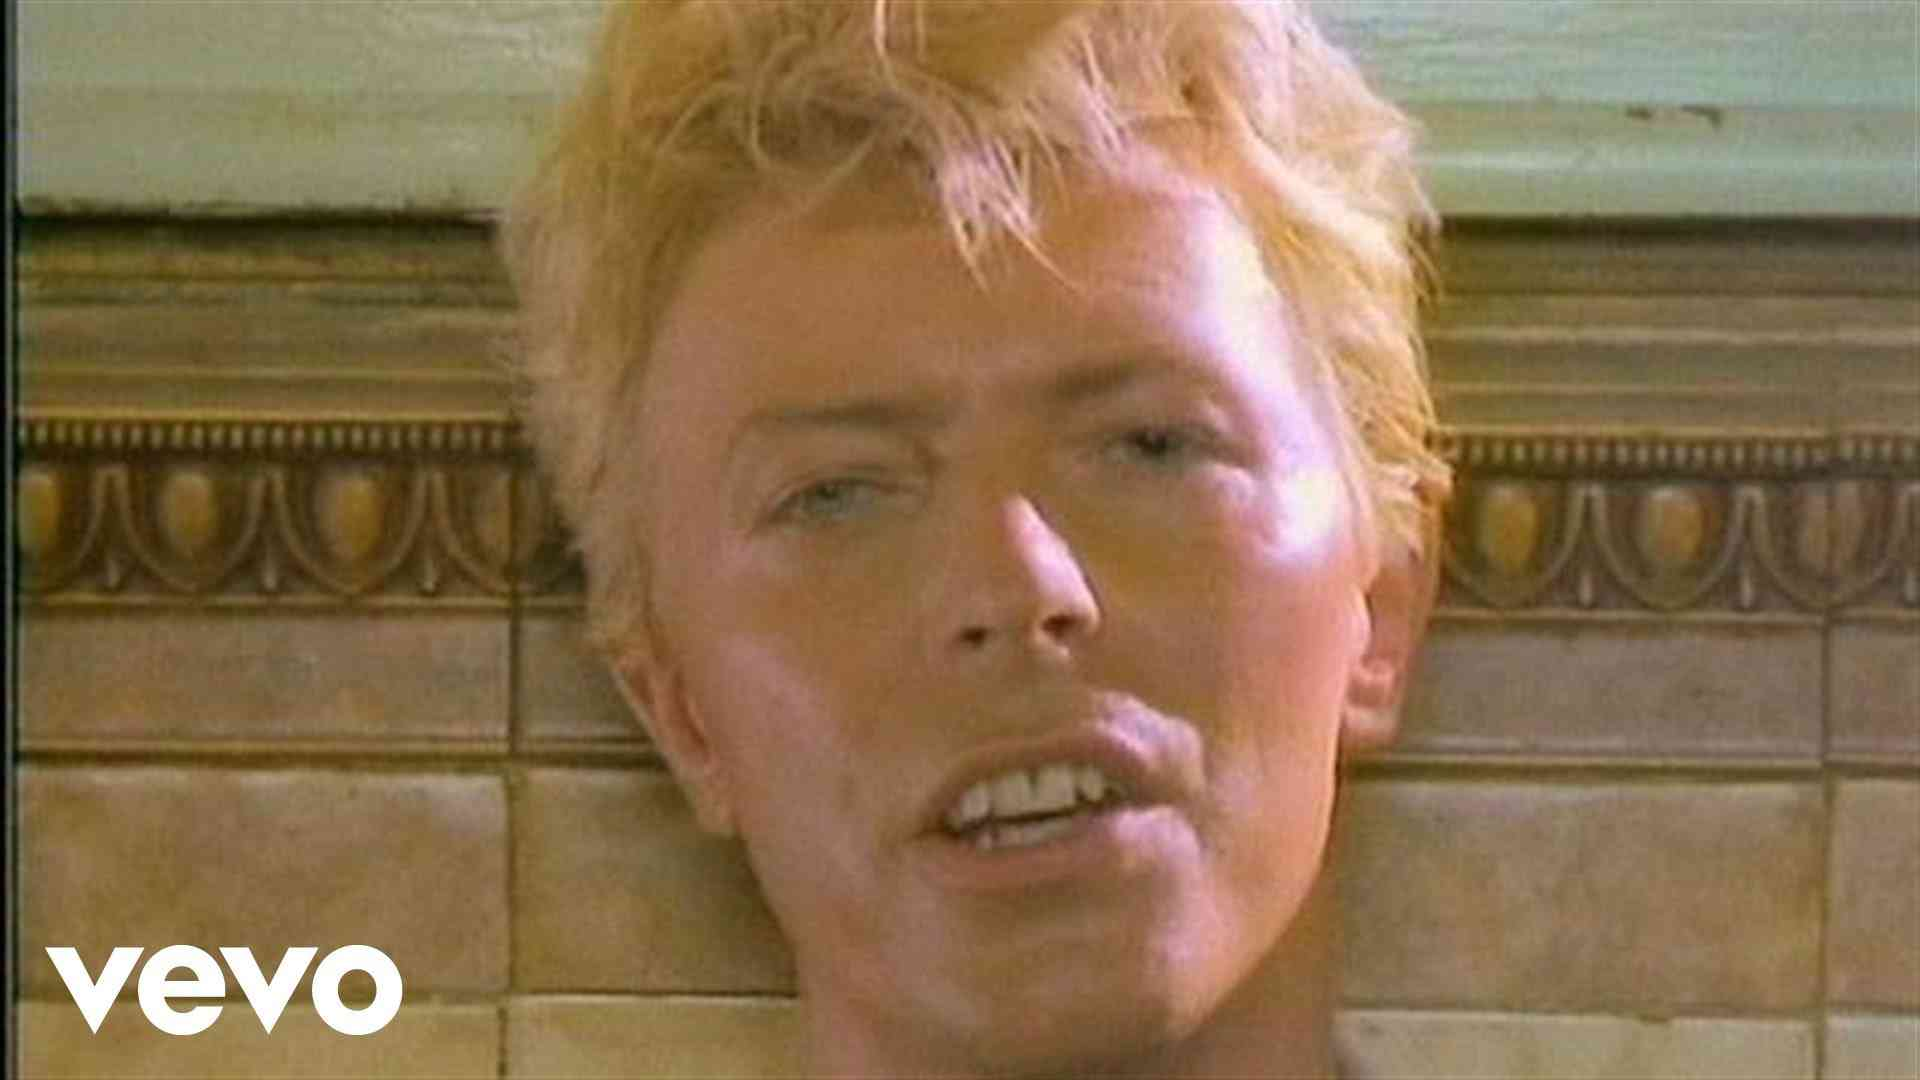 David Bowie - Let's Dance - YouTube